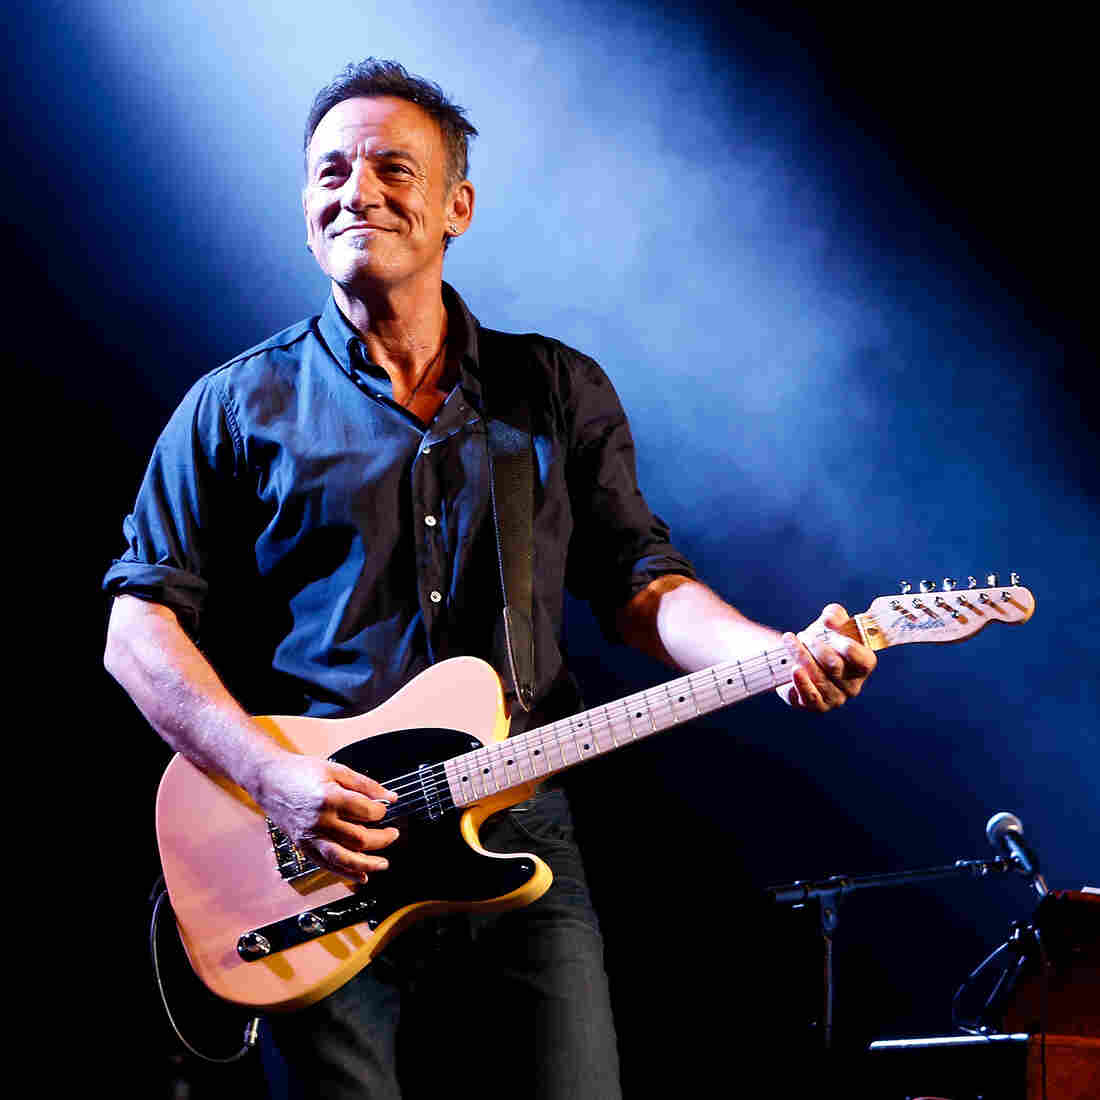 A Long Road To 'High Hopes': An Interview With Bruce Springsteen